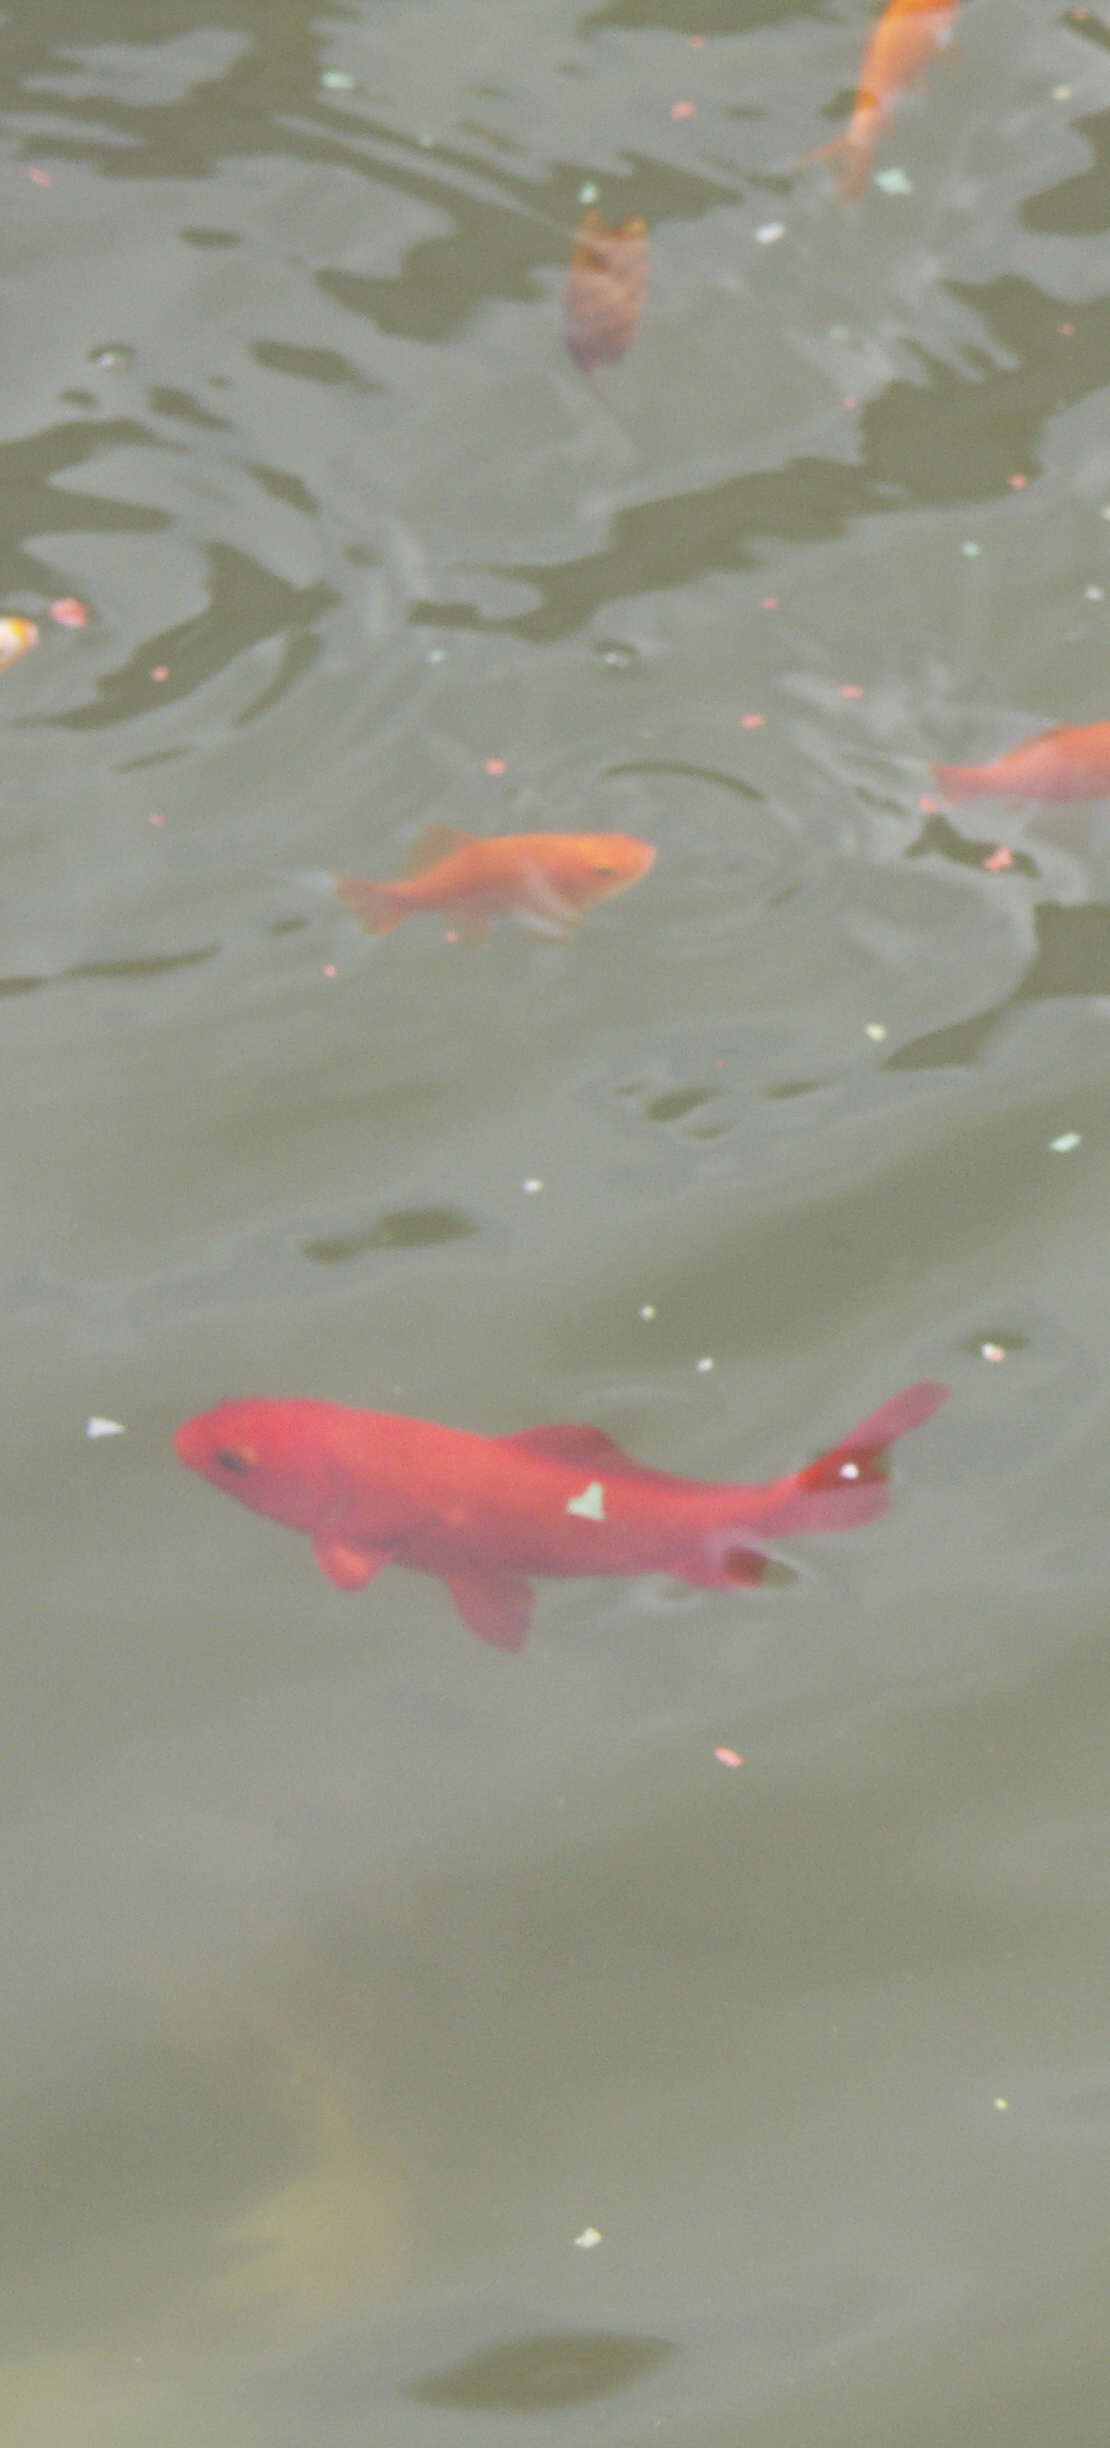 Goldfish in a pond with milky water